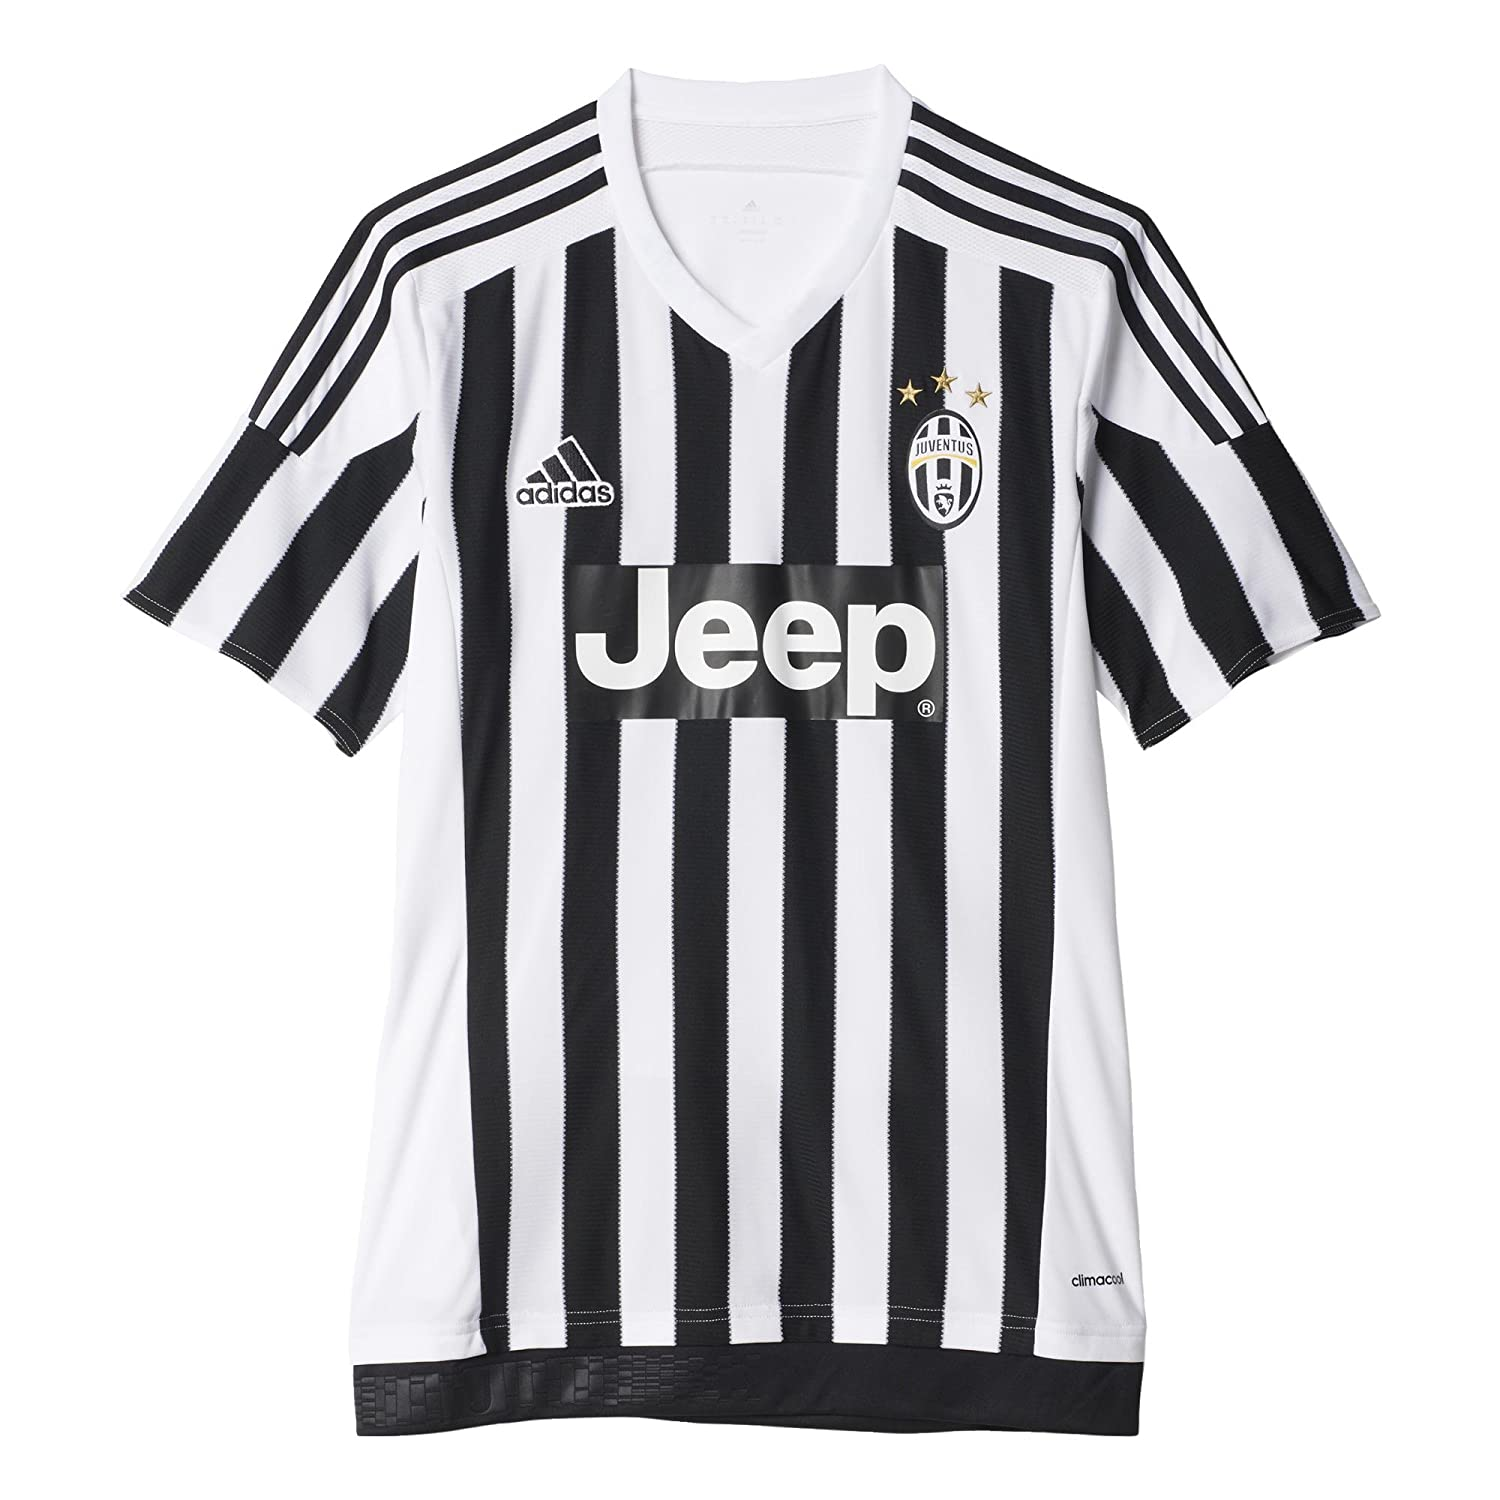 new style d78e5 45b3f adidas Juventus Home Jersey-White